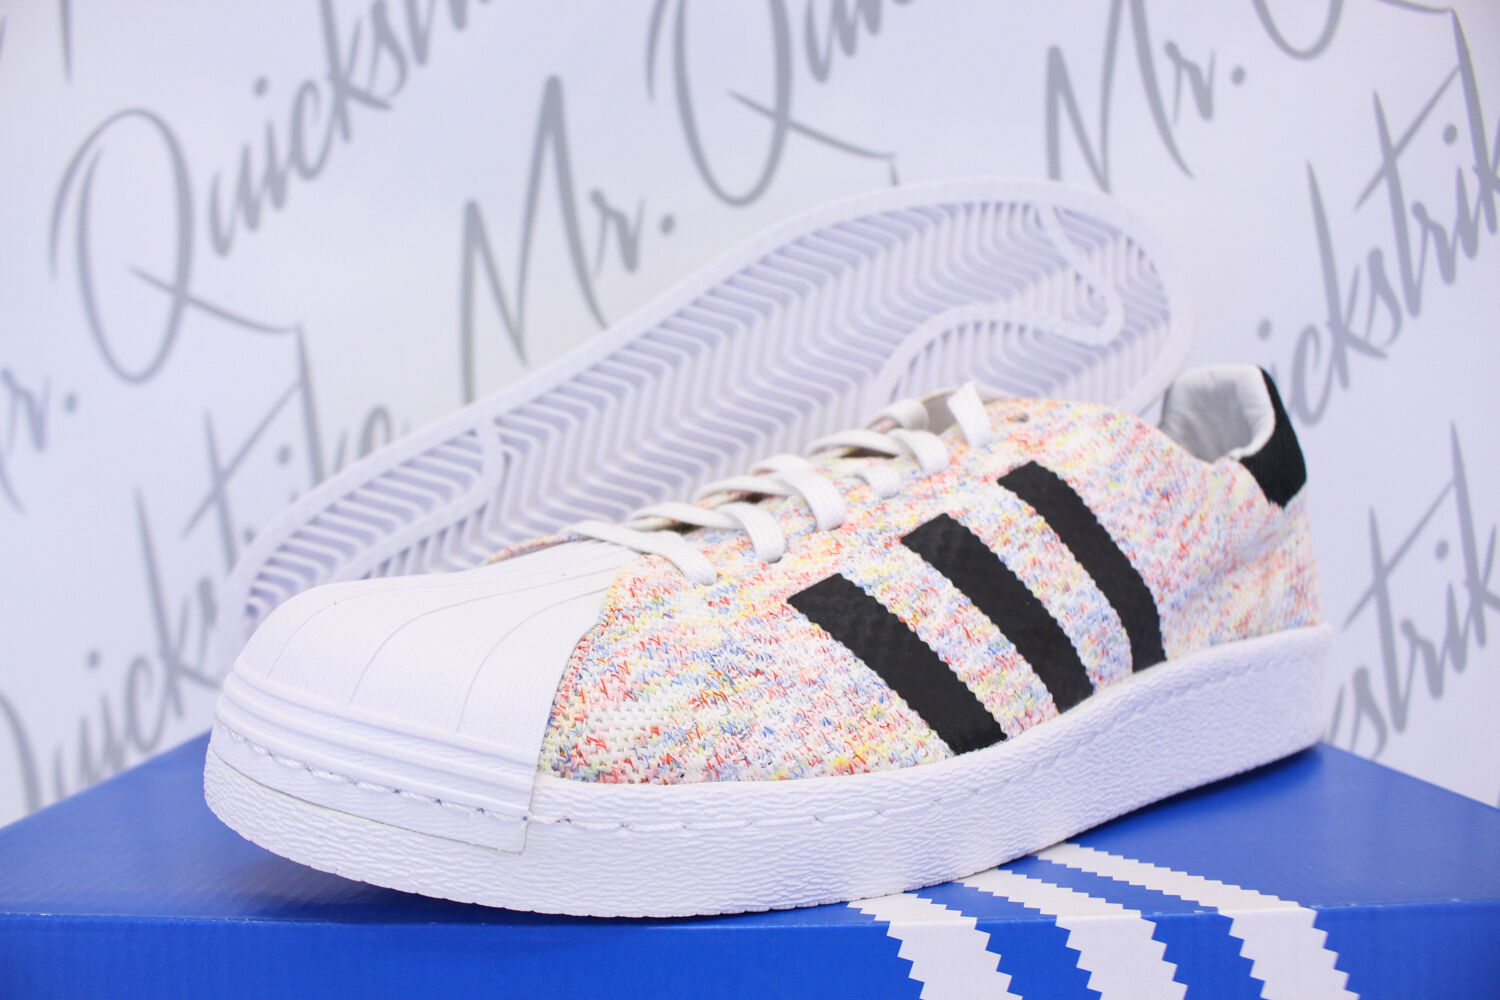 ADIDAS SUPERSTAR 80 'S PACK SZ 8 MULTICOLOR PRIMEKNIT PK S75845